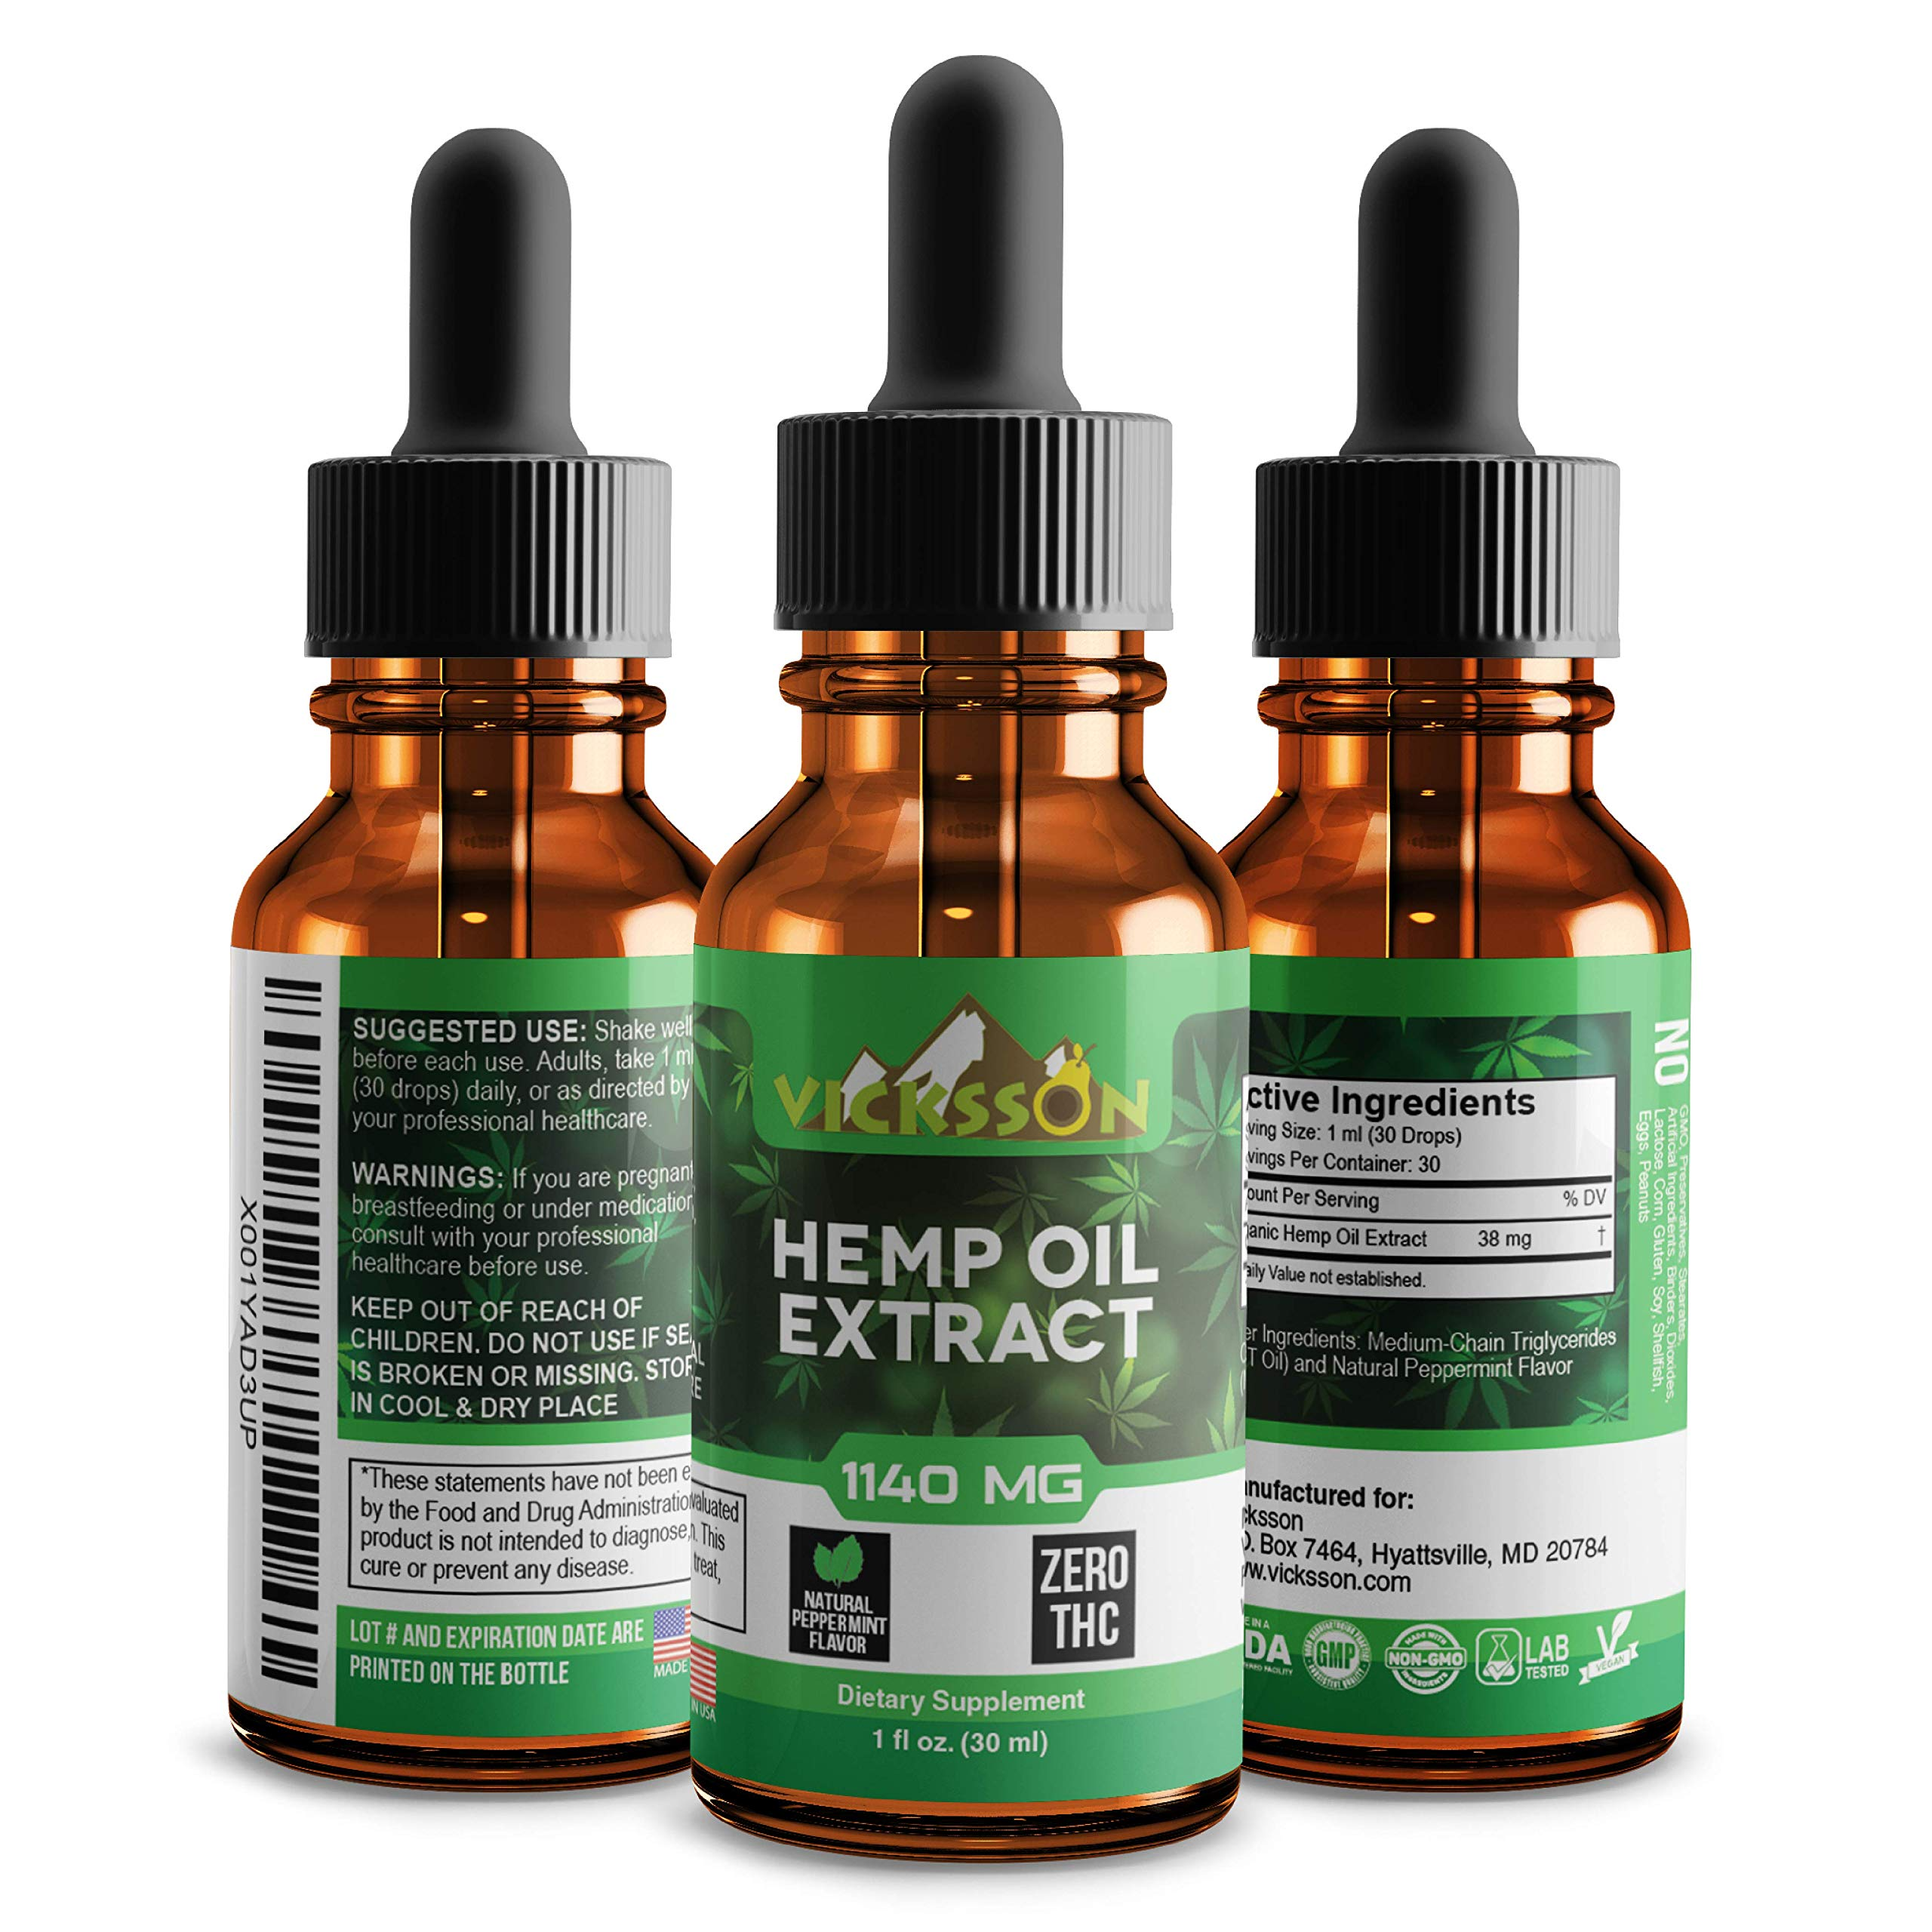 Vicksson Organic Hemp Oil Drops 1140 Mg – Hemp Seed Extract for Pain, Anxiety & Stress Relief with MCT Fatty Acids – Sleep, Mood, Anti-inflammatory, Joint, Skin, Hair Support Supplement Oil